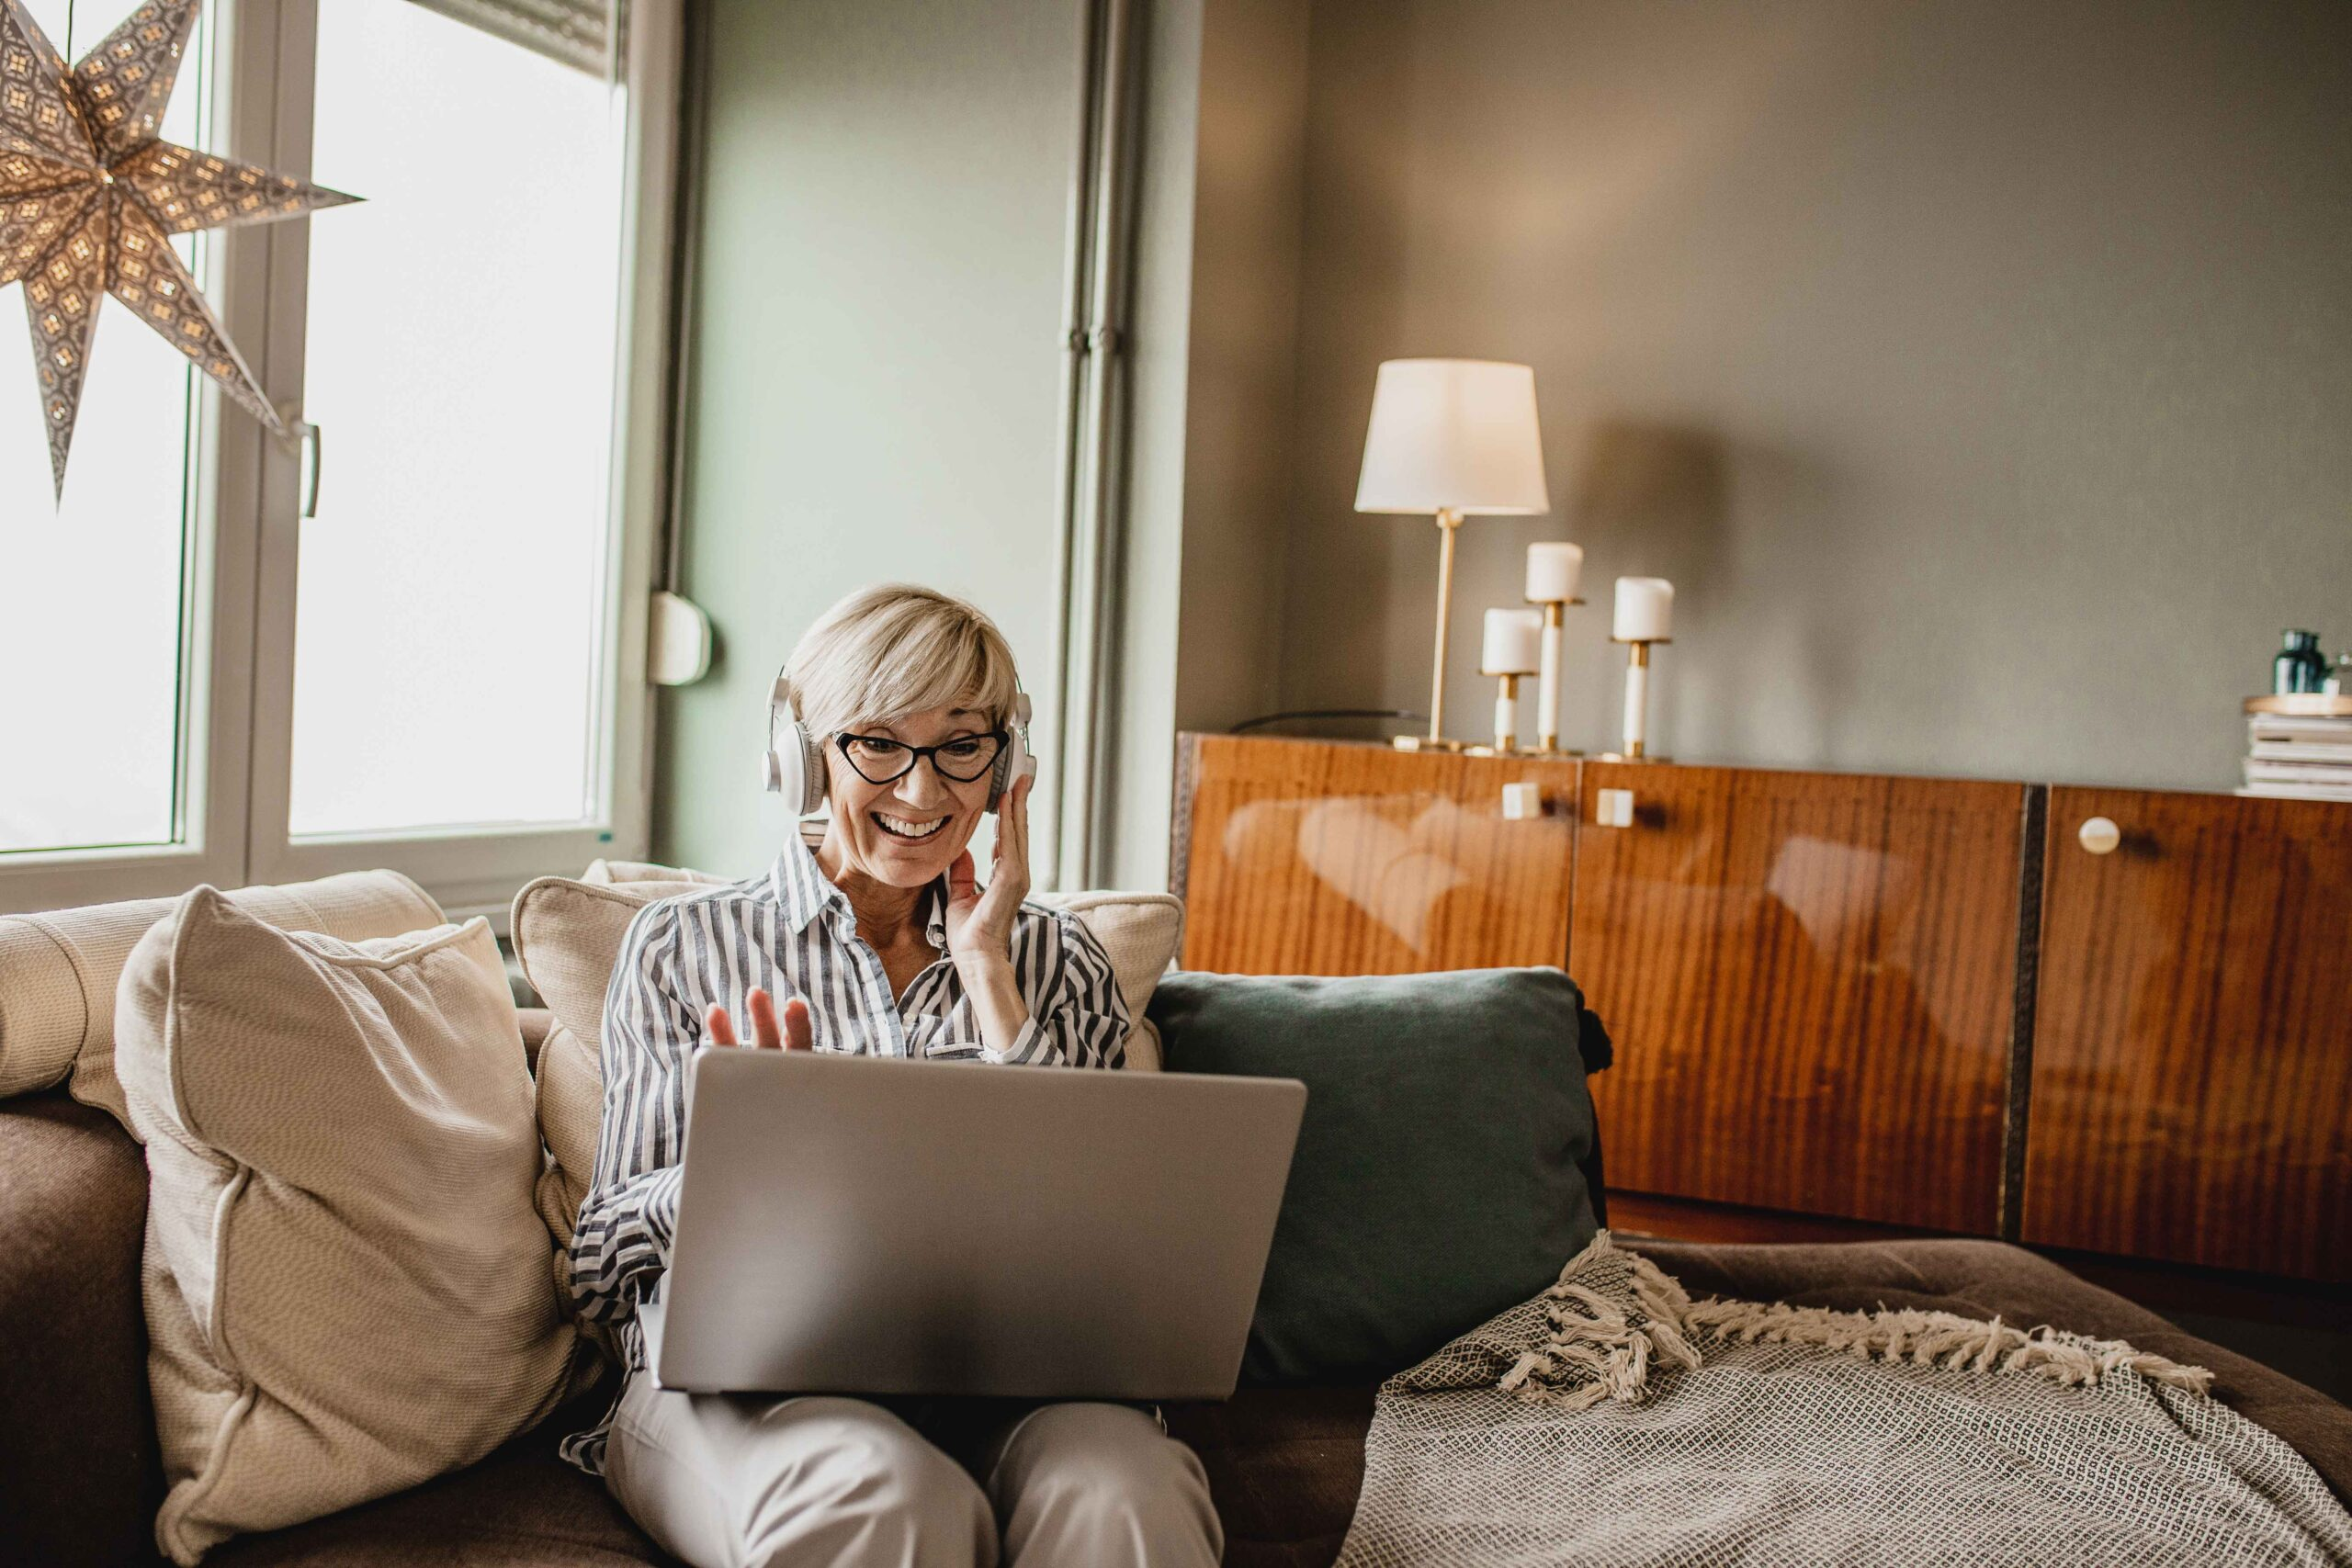 Mature woman is in her modern apartment using a laptop